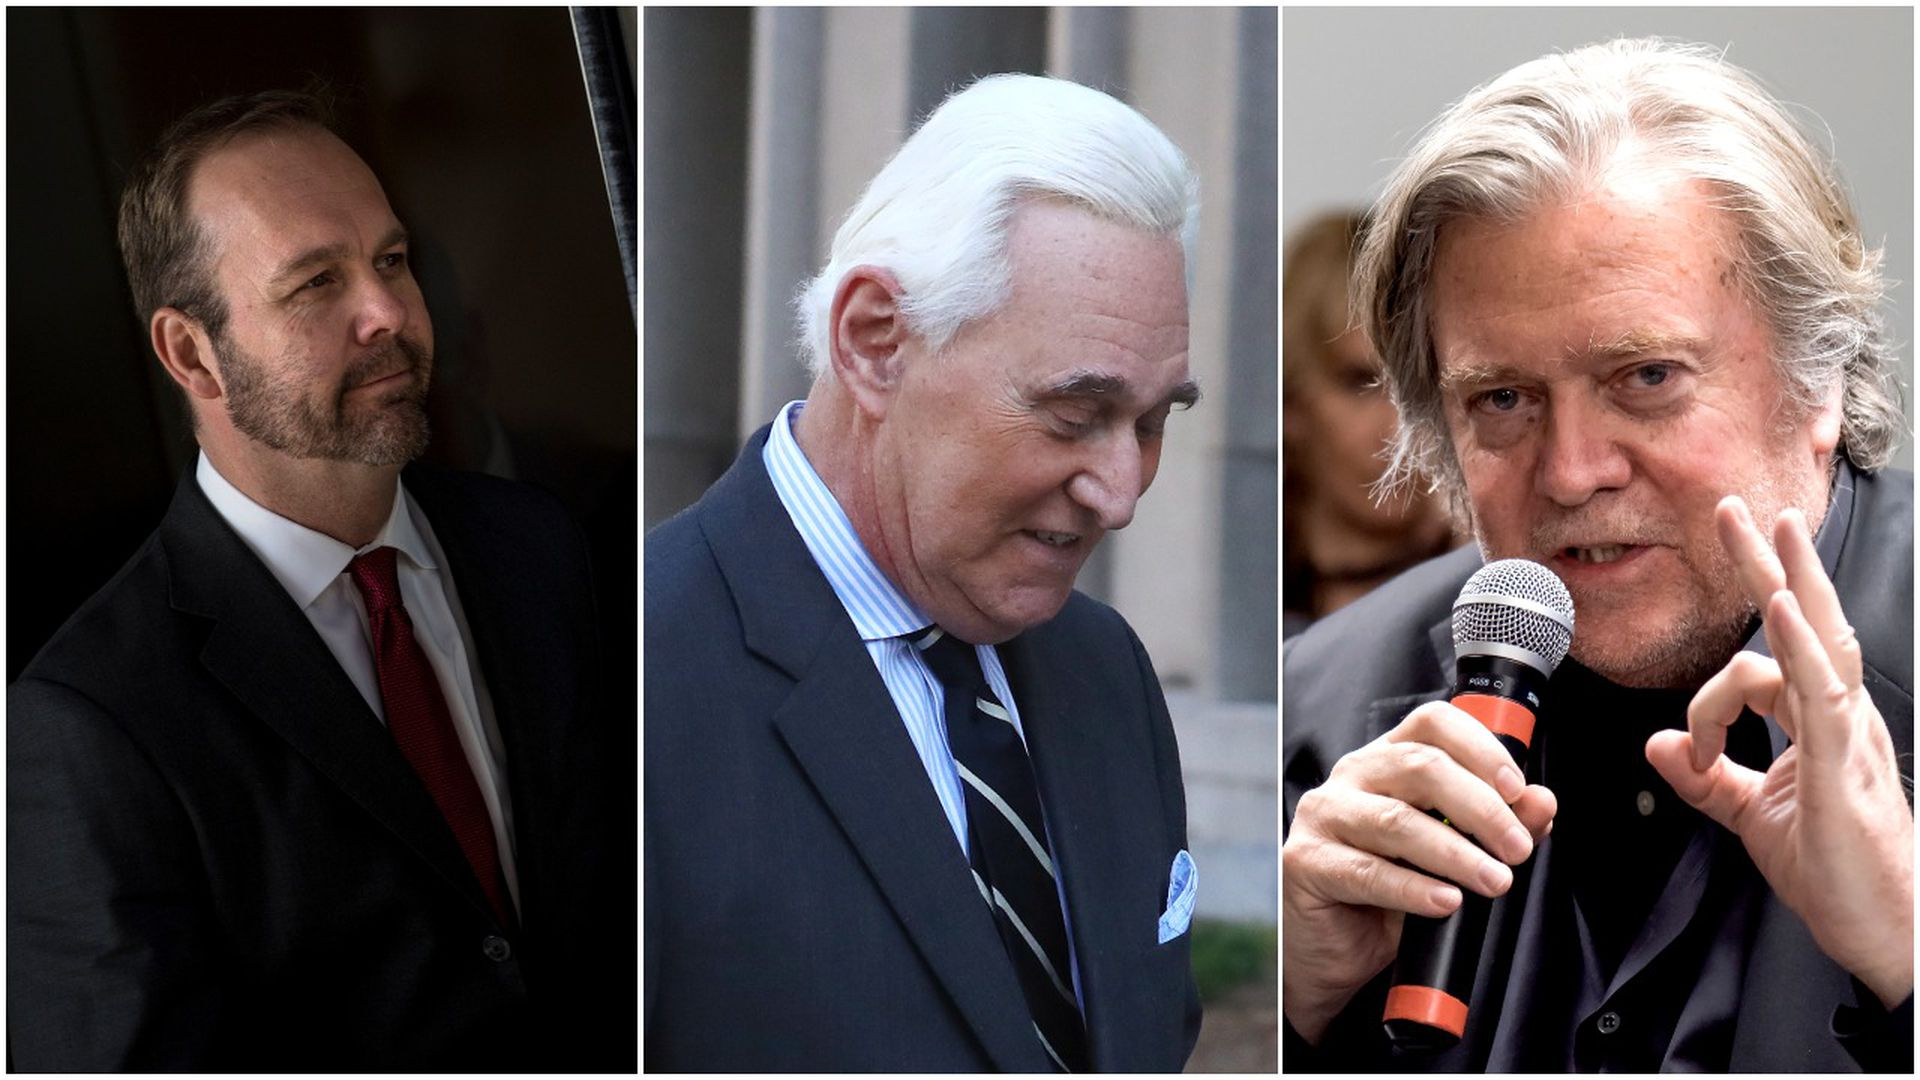 This image is a three-way split between Rick Gates, Roger Stone, and Stephen Bannon.